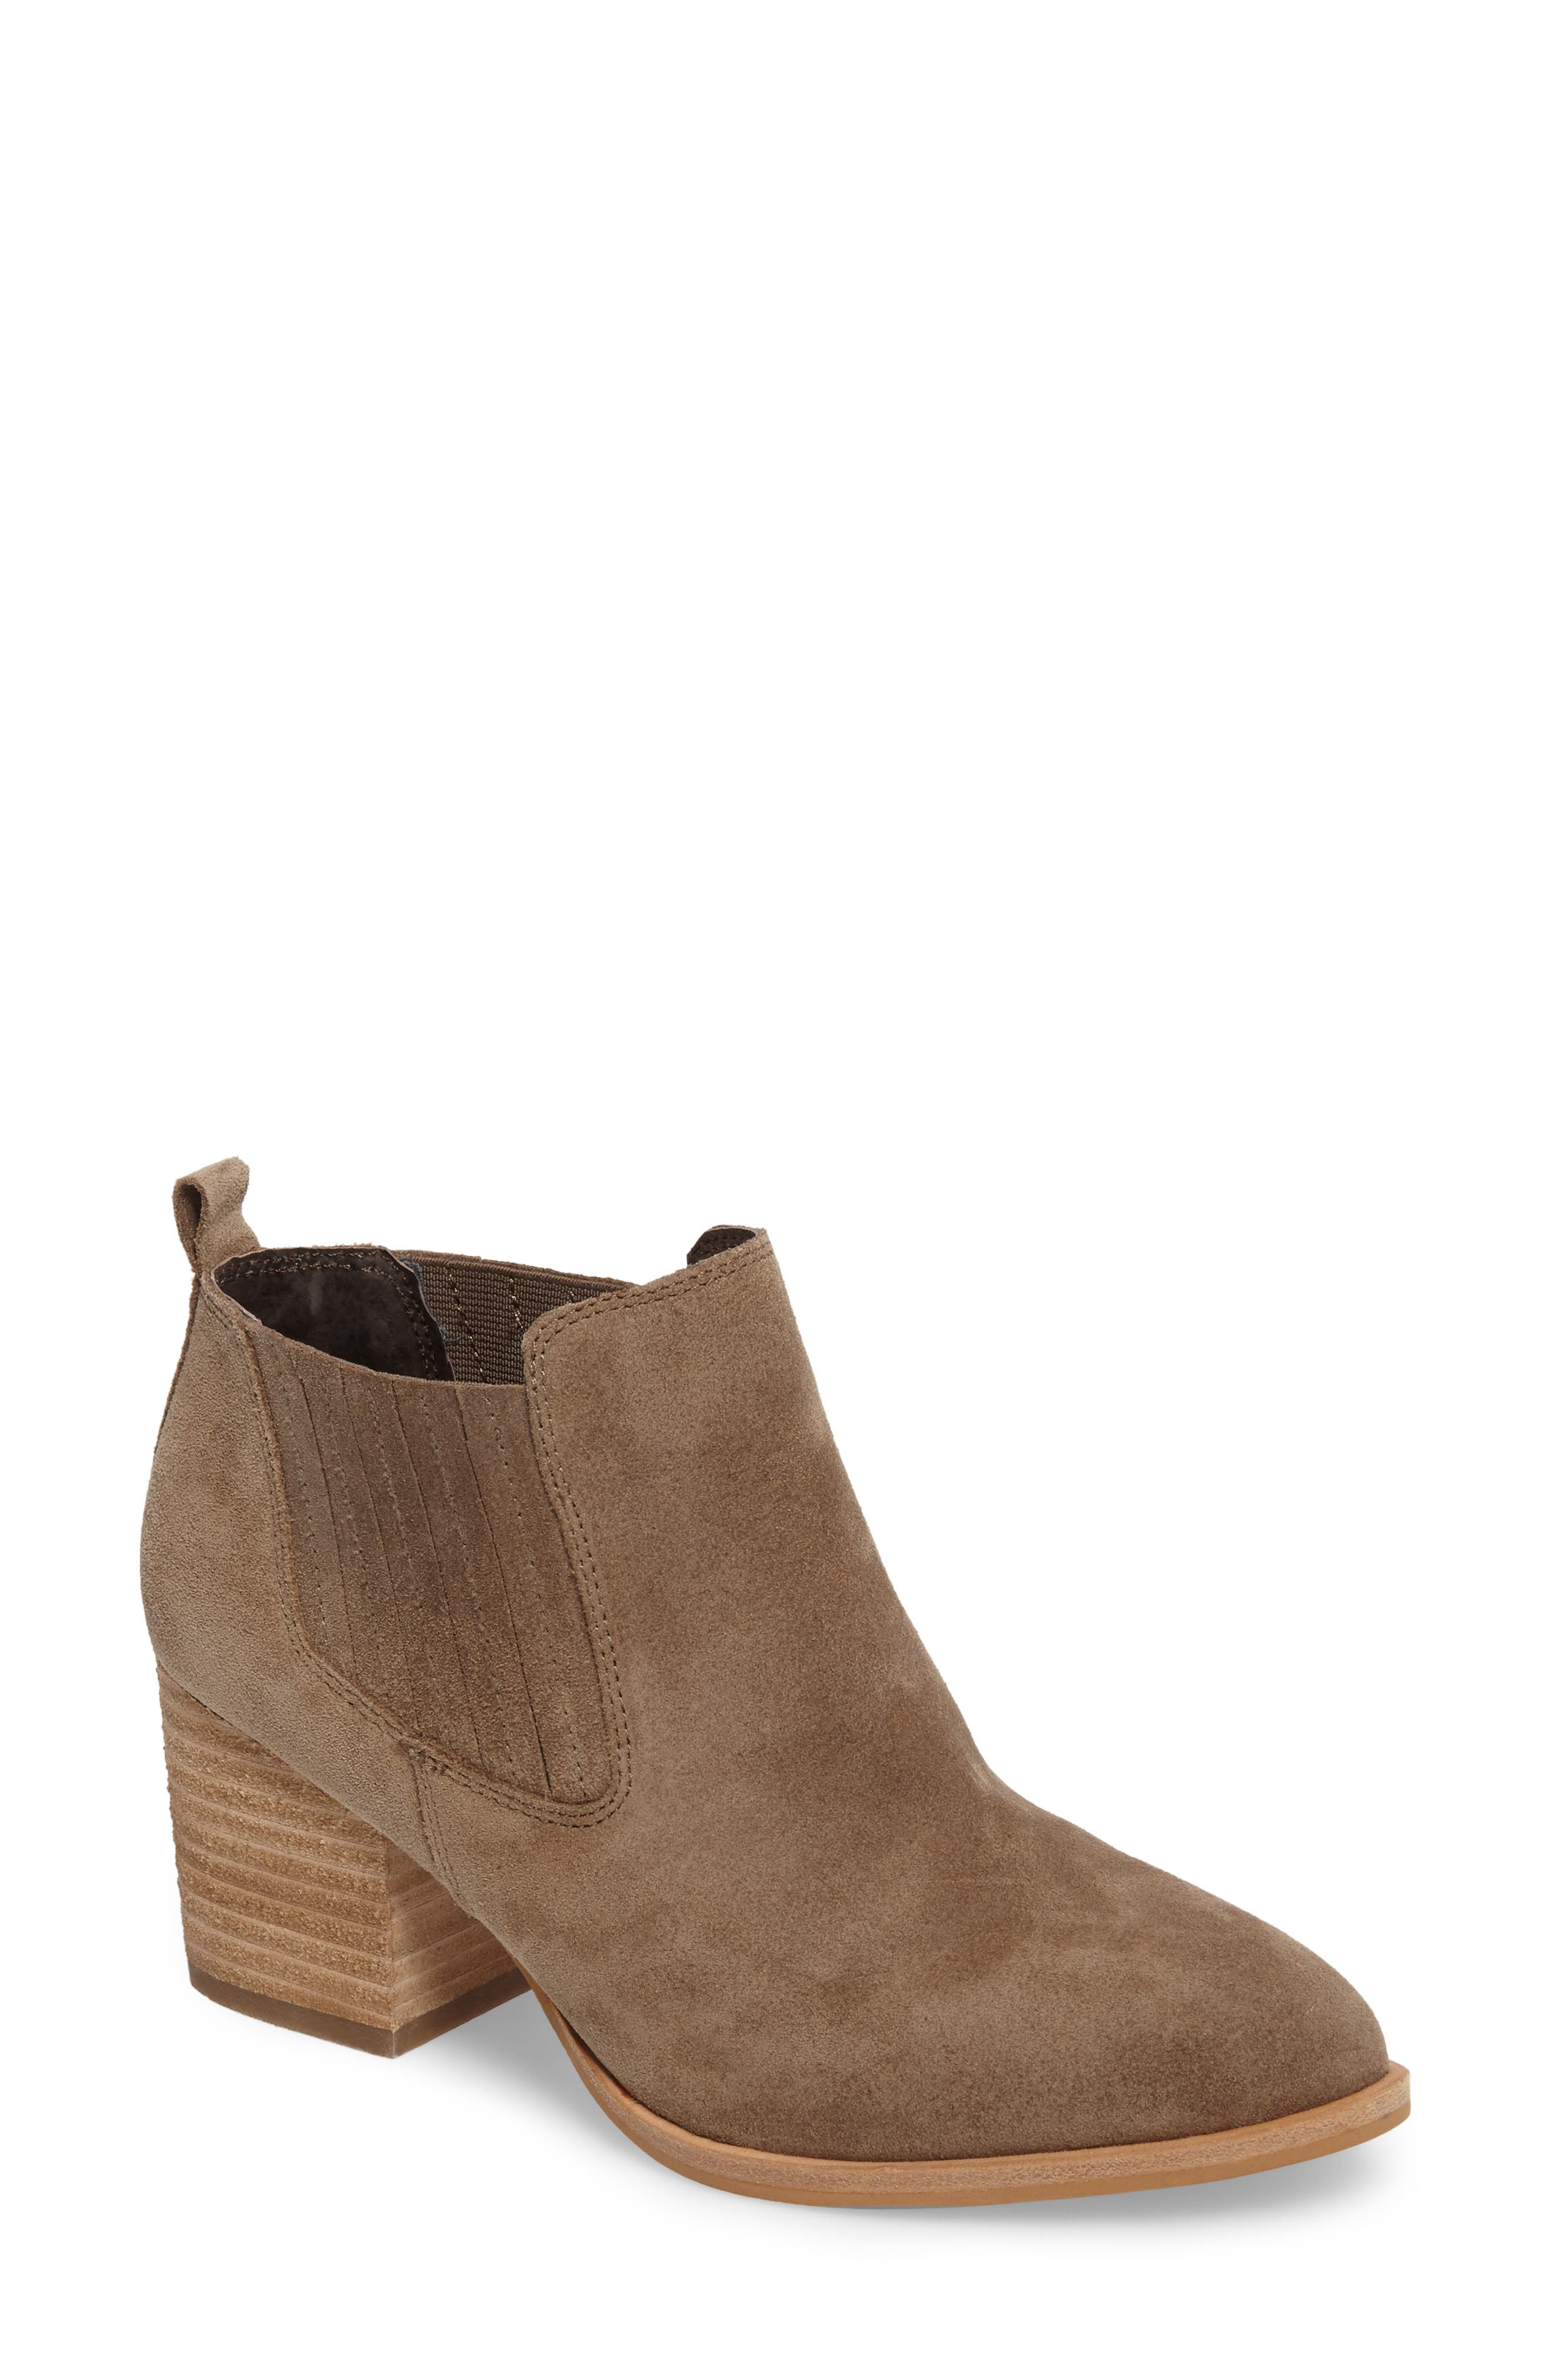 Olicia Gored Bootie,                         Main,                         color, MARMOTTA LIGHT GREY SUEDE